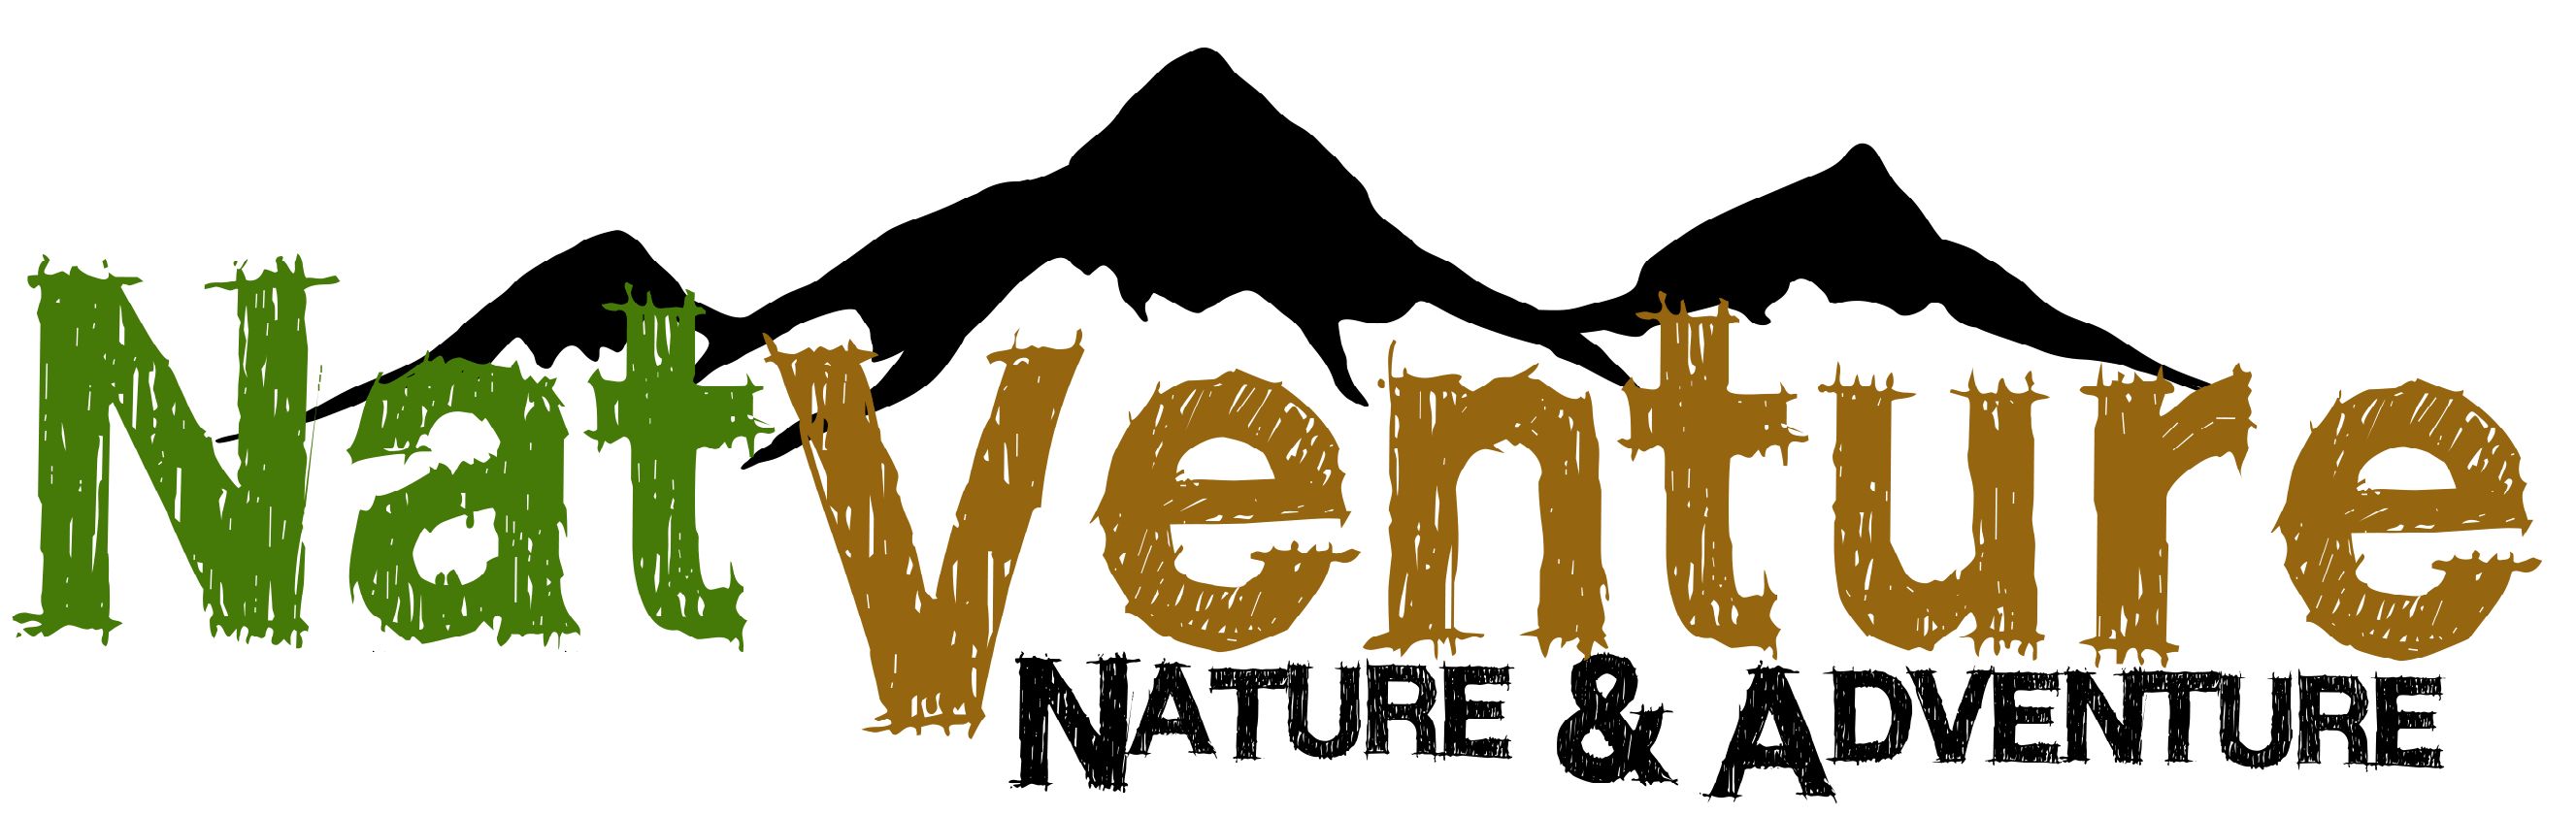 Natventure | Nature & Adventure